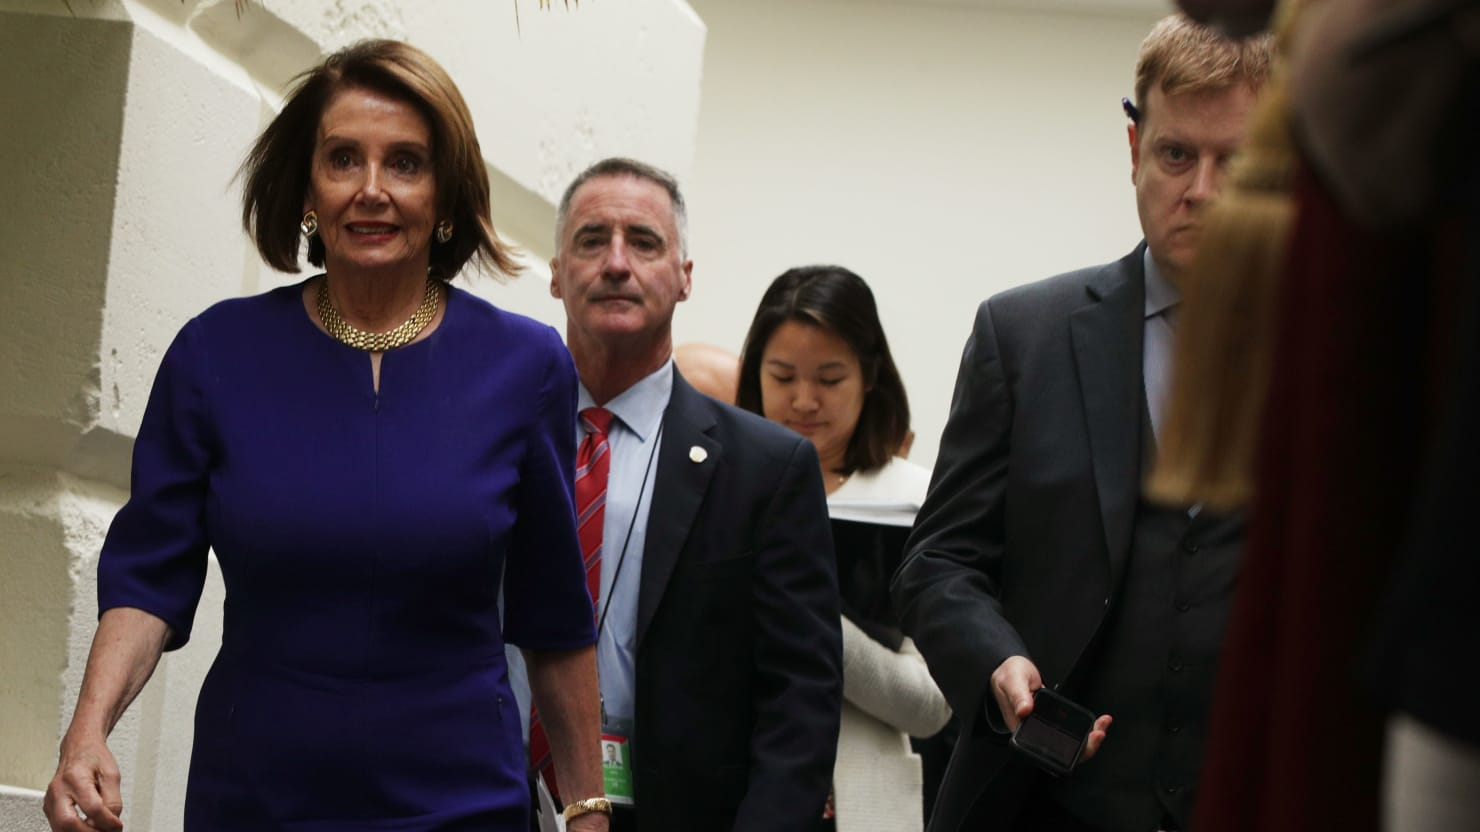 Nancy Pelosi: We Believe Trump 'Is Engaged in a Cover-Up'